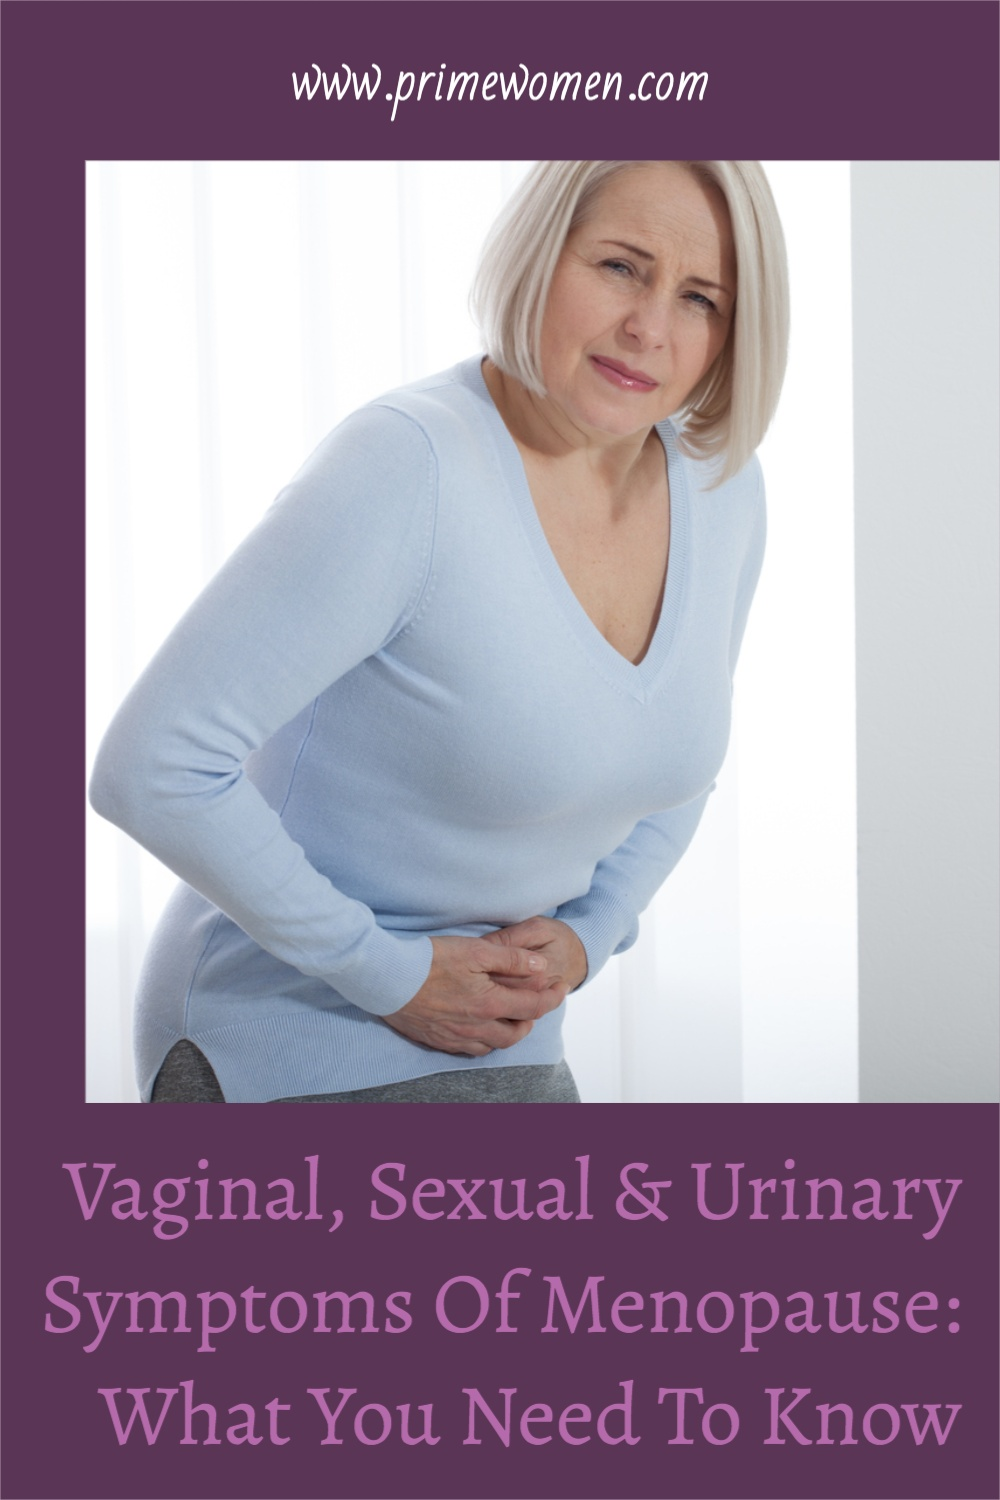 Vaginal,Sexual & Urinary Symptoms Of-Menopause - What You Need To Know